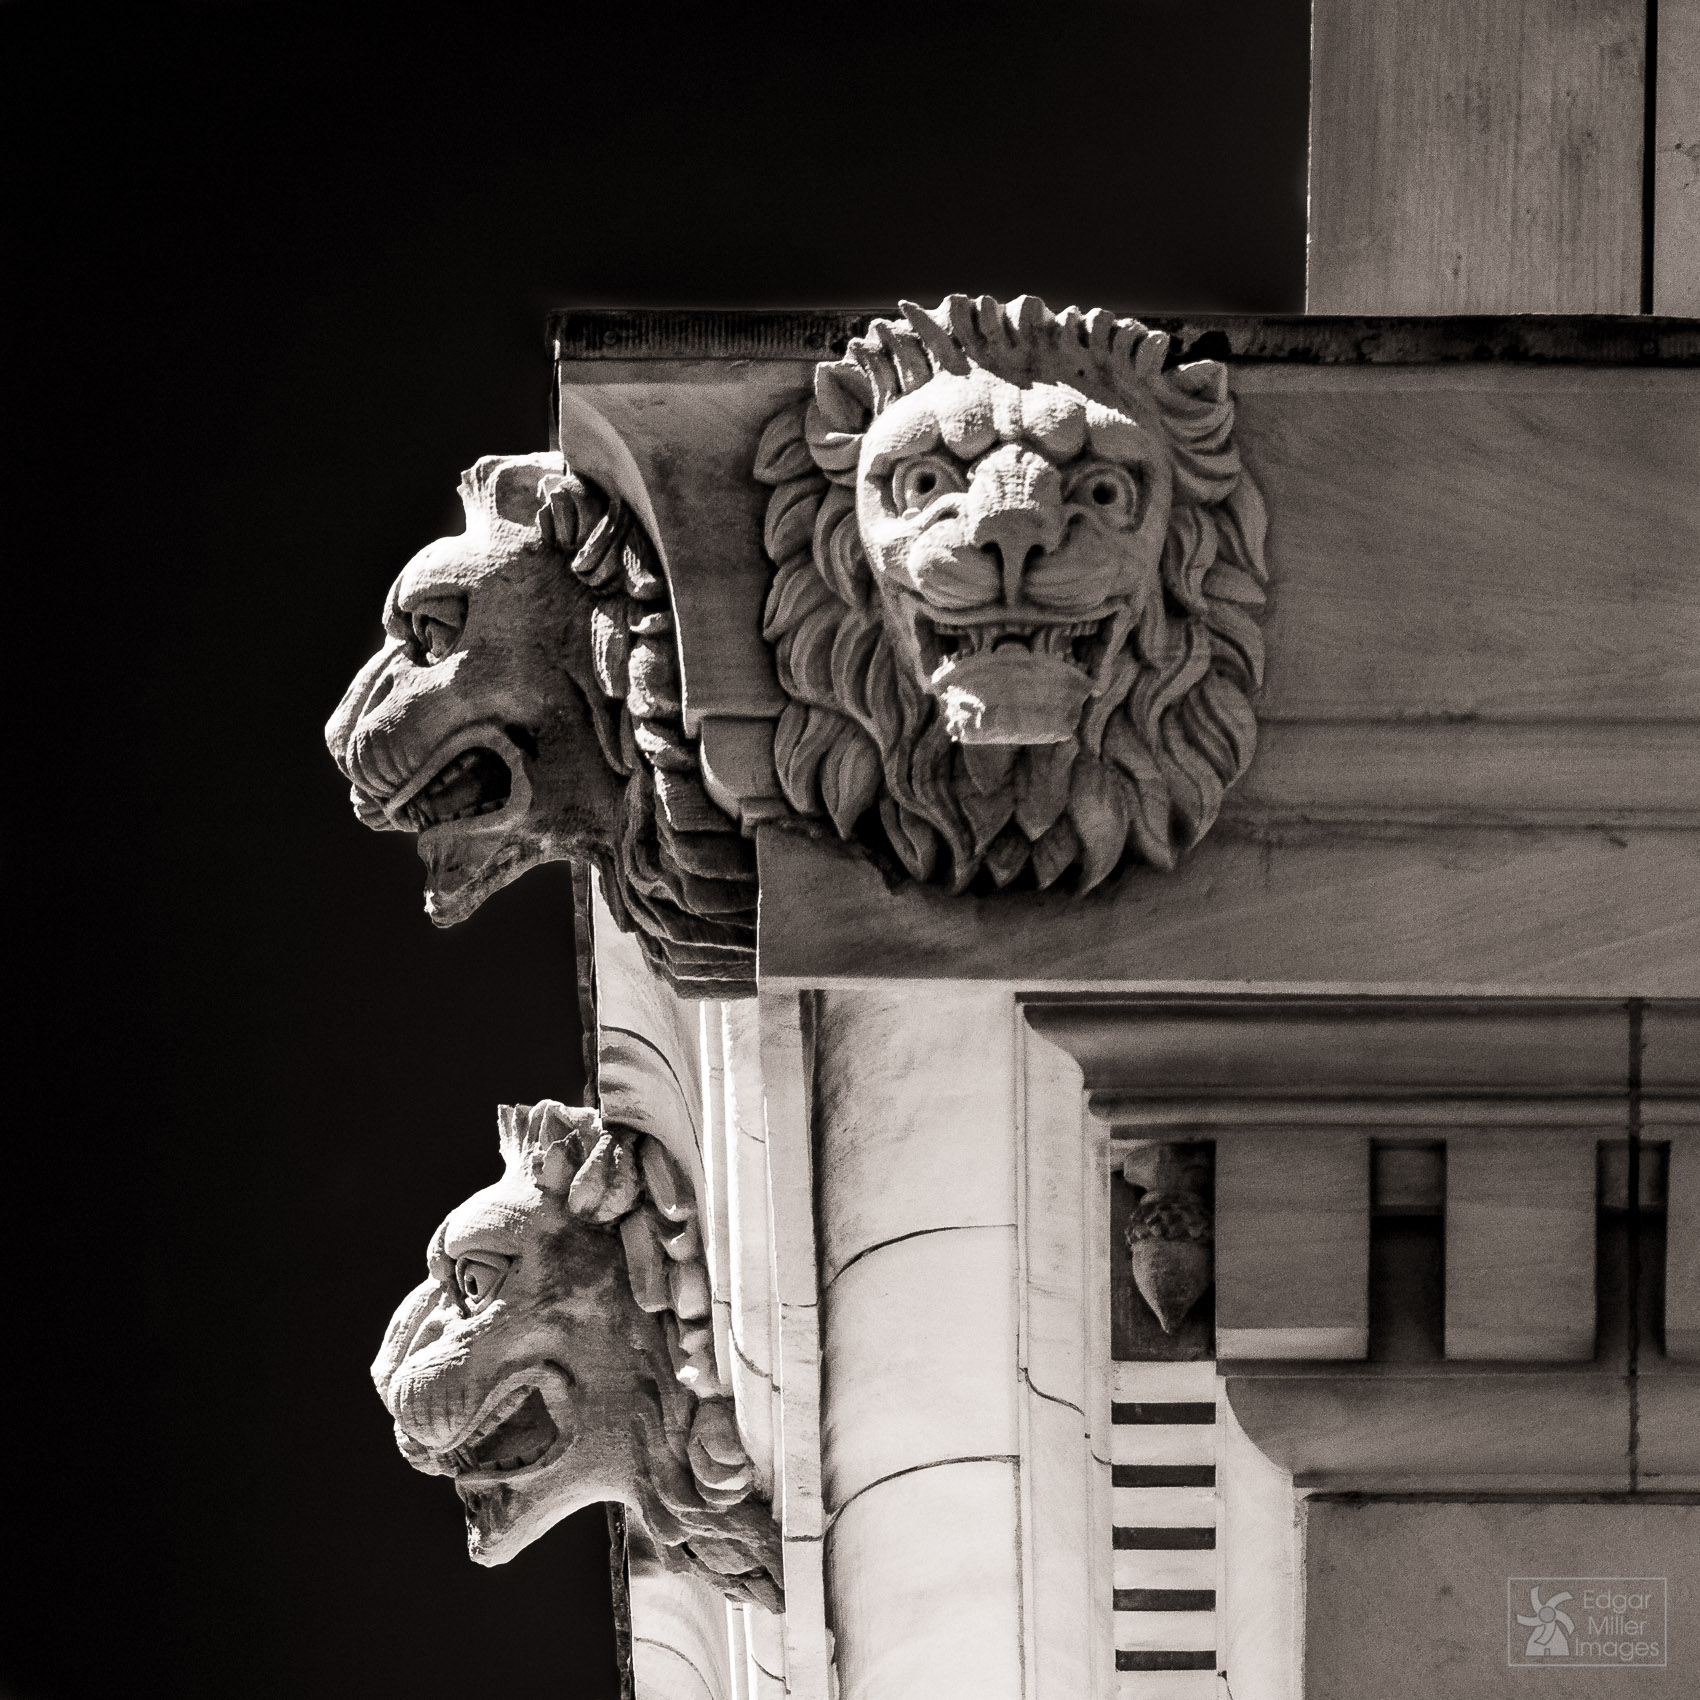 Lions at the U.S. Post Office